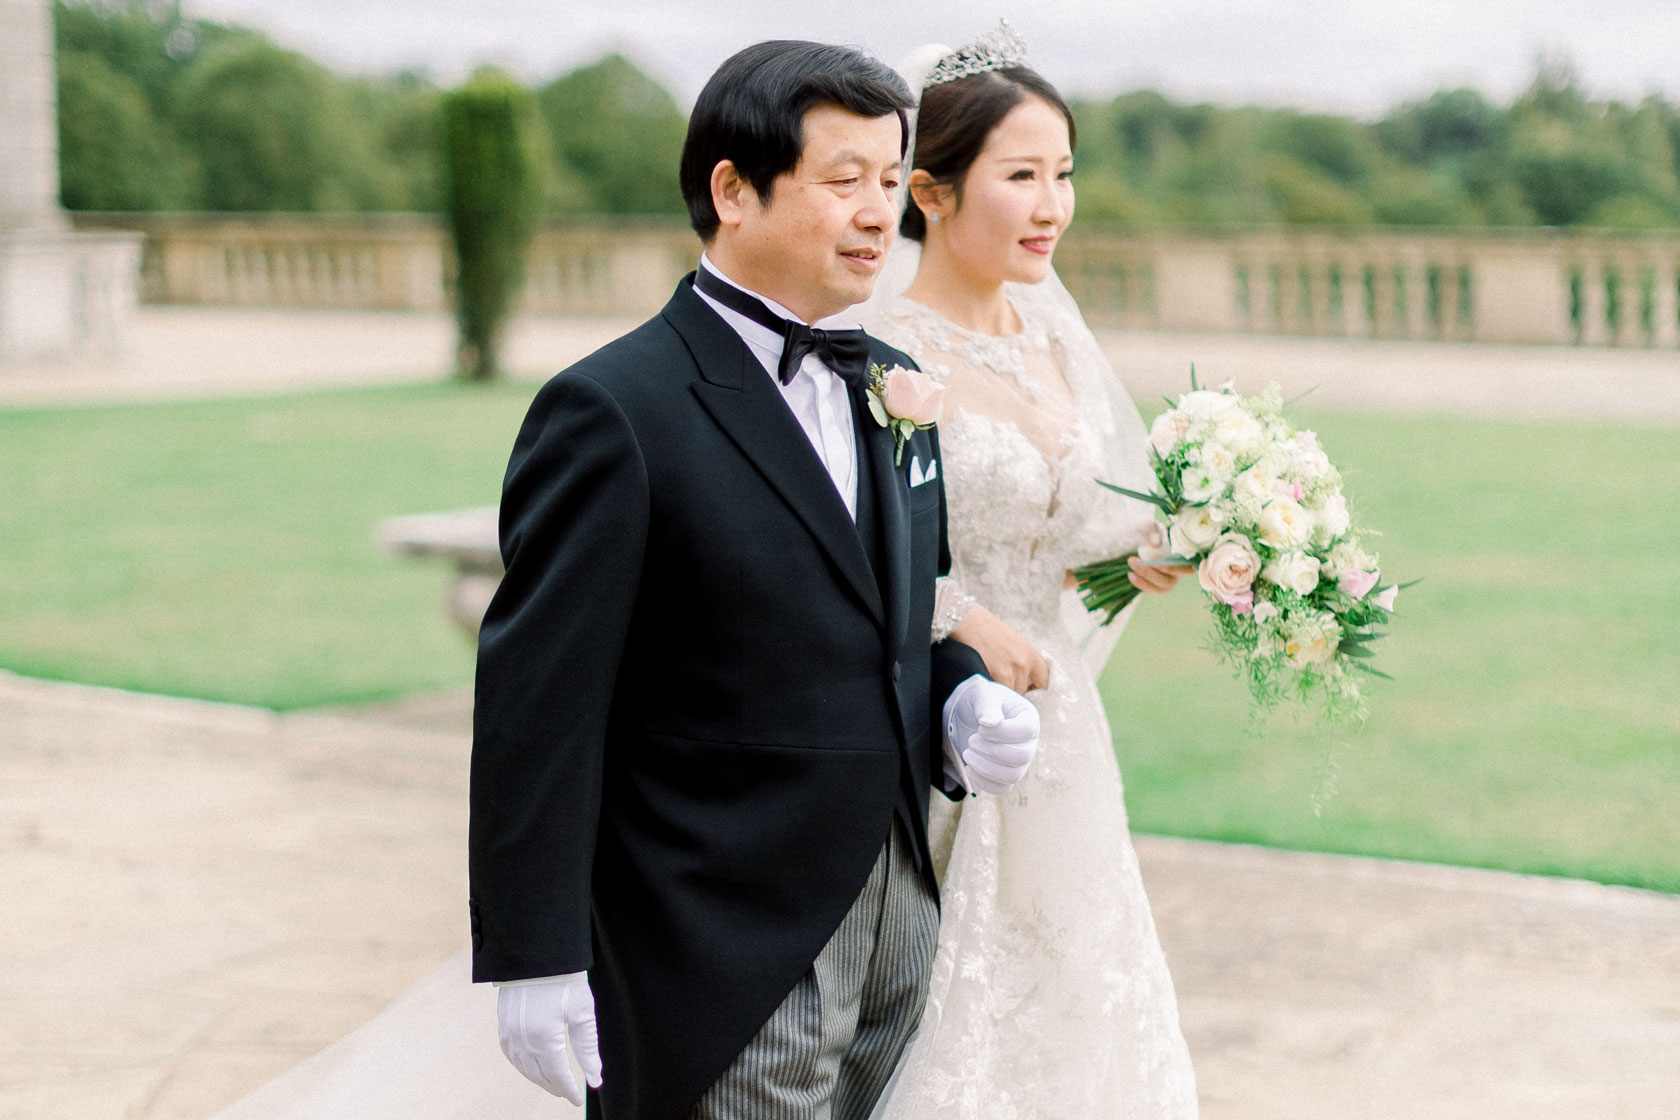 Chinese bride with her Father walking down the aisle with her bridal bouquet on the lawn at Cliveden House